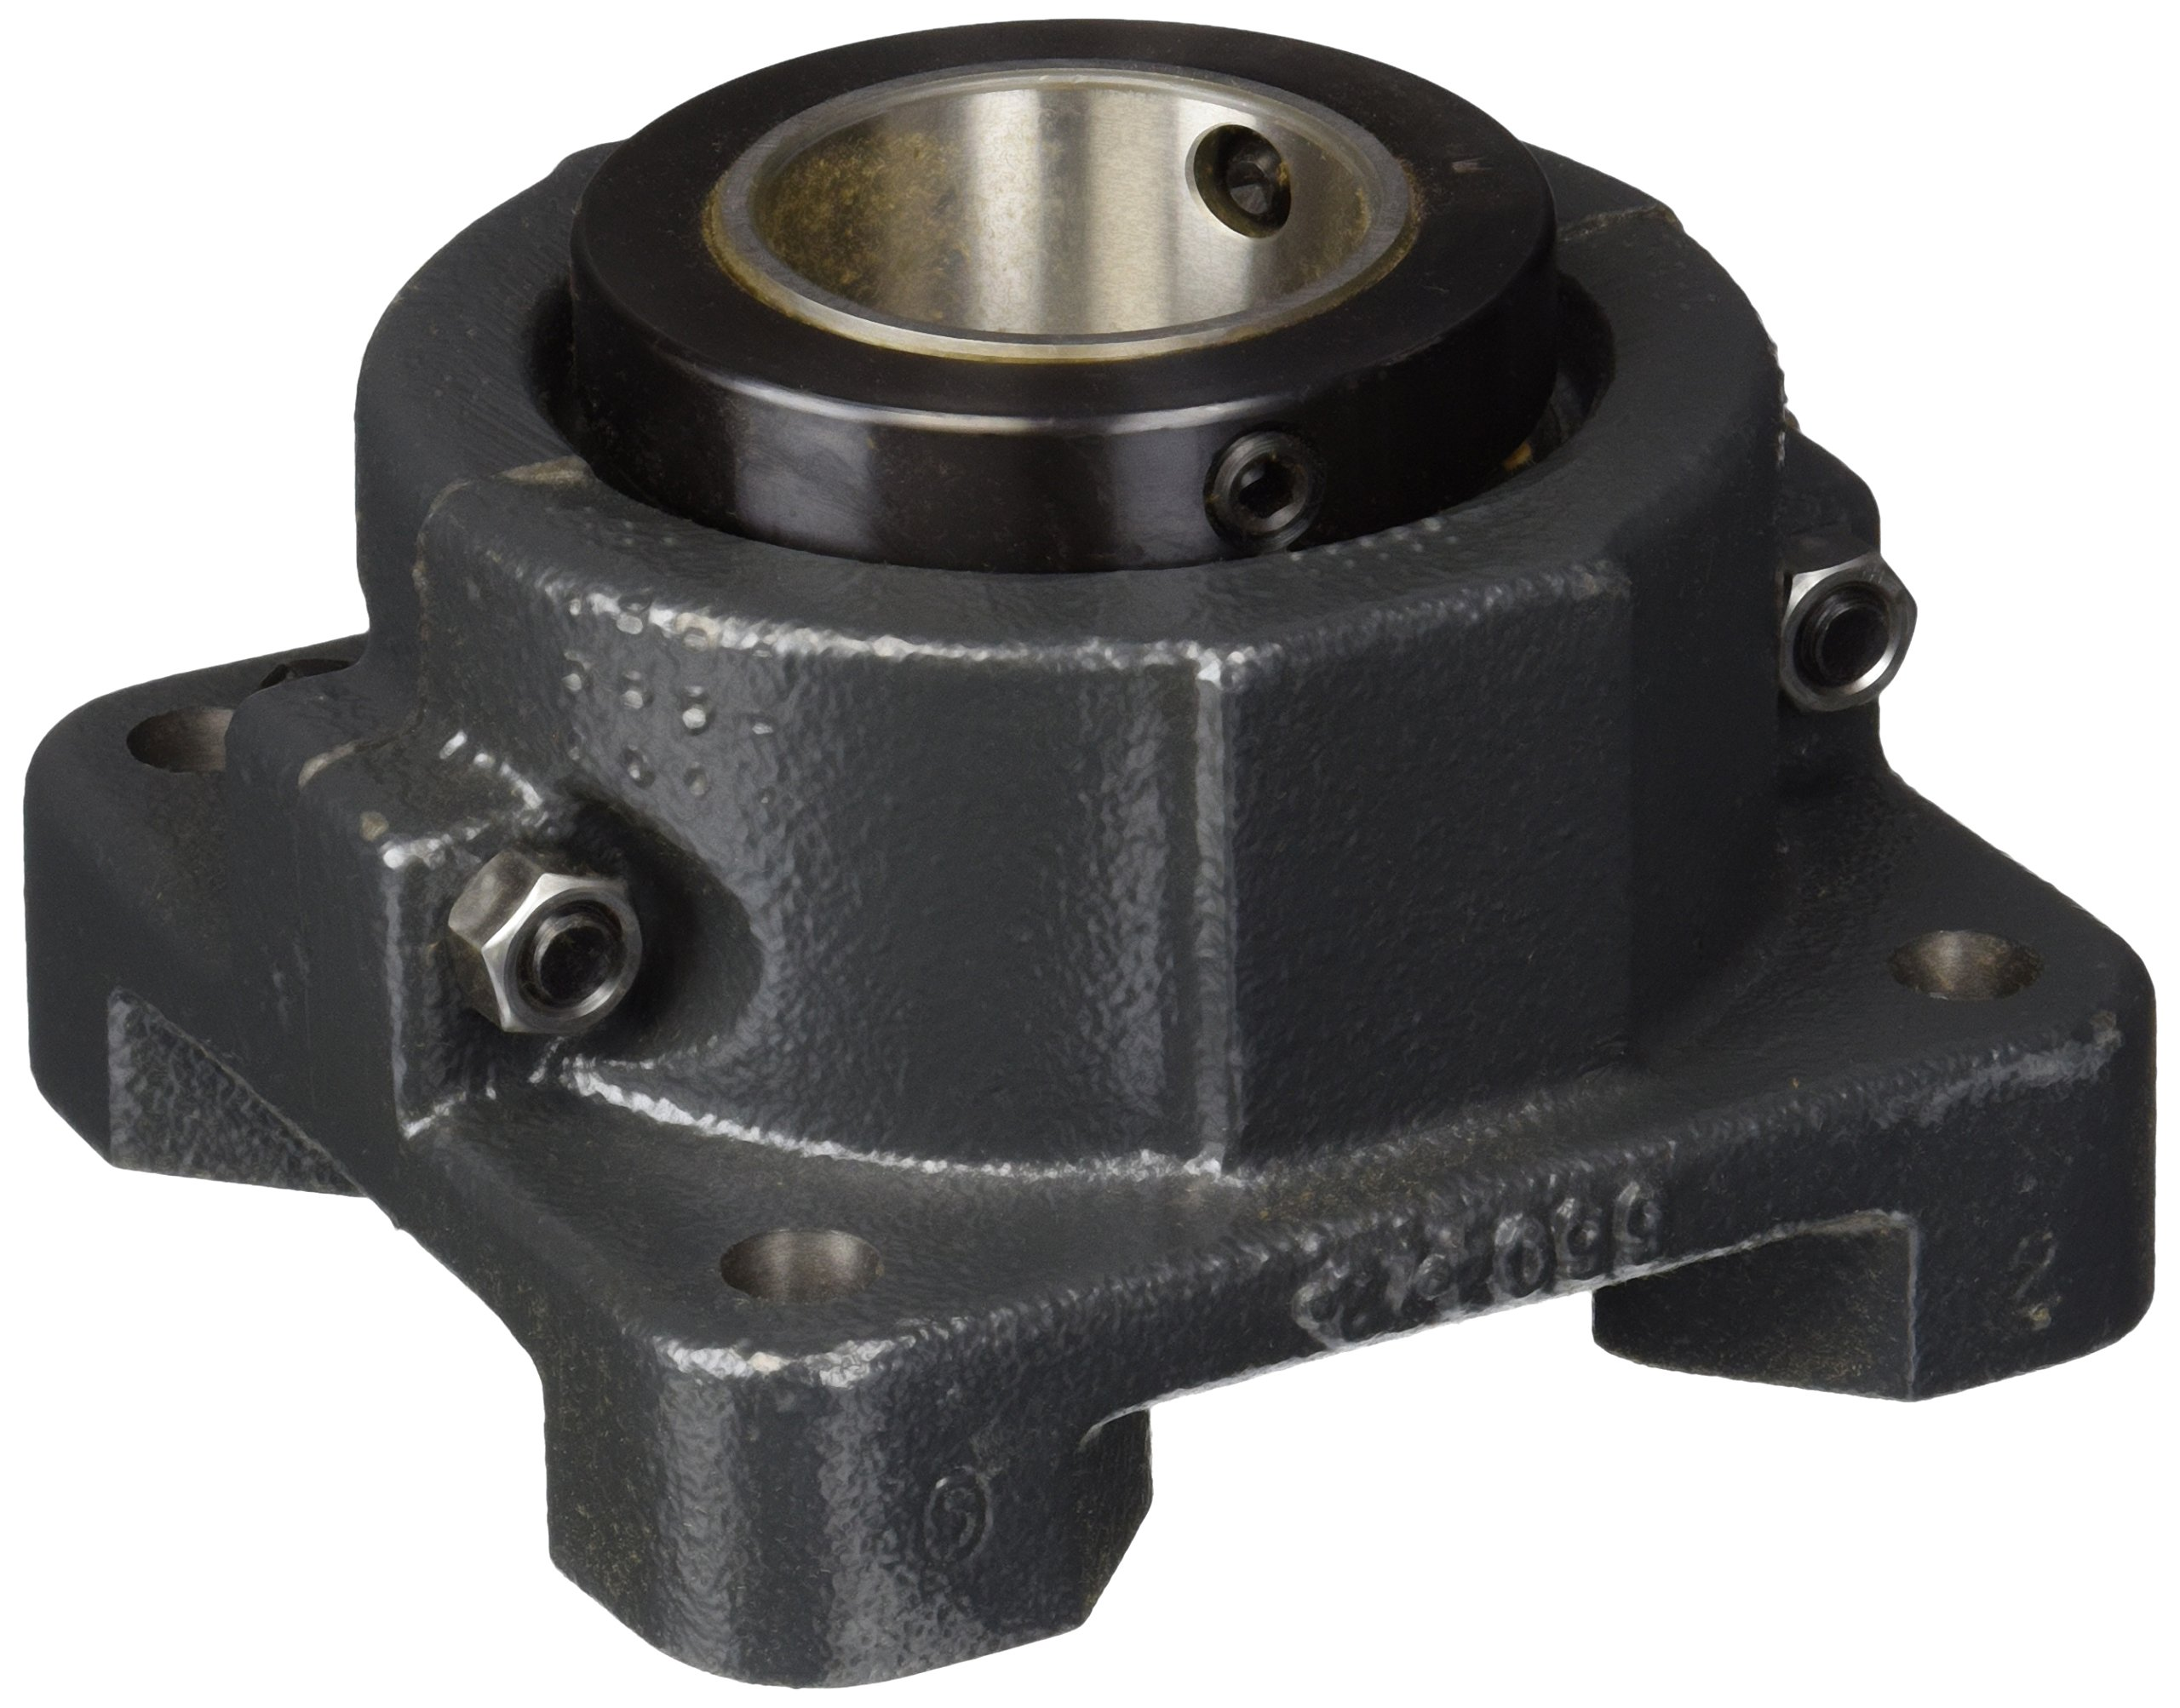 Sealmaster RFB 200 Heavy Duty Flange Unit, 4 Bolt, Regreasable, Felt Seals, Double Concentric Clamp Collars, Cast Iron Housing, 2'' Bore, 5-5/8'' Overall Length, 4-3/8'' Bolt Hole Spacing Width, 1-3/16'' Flange Height